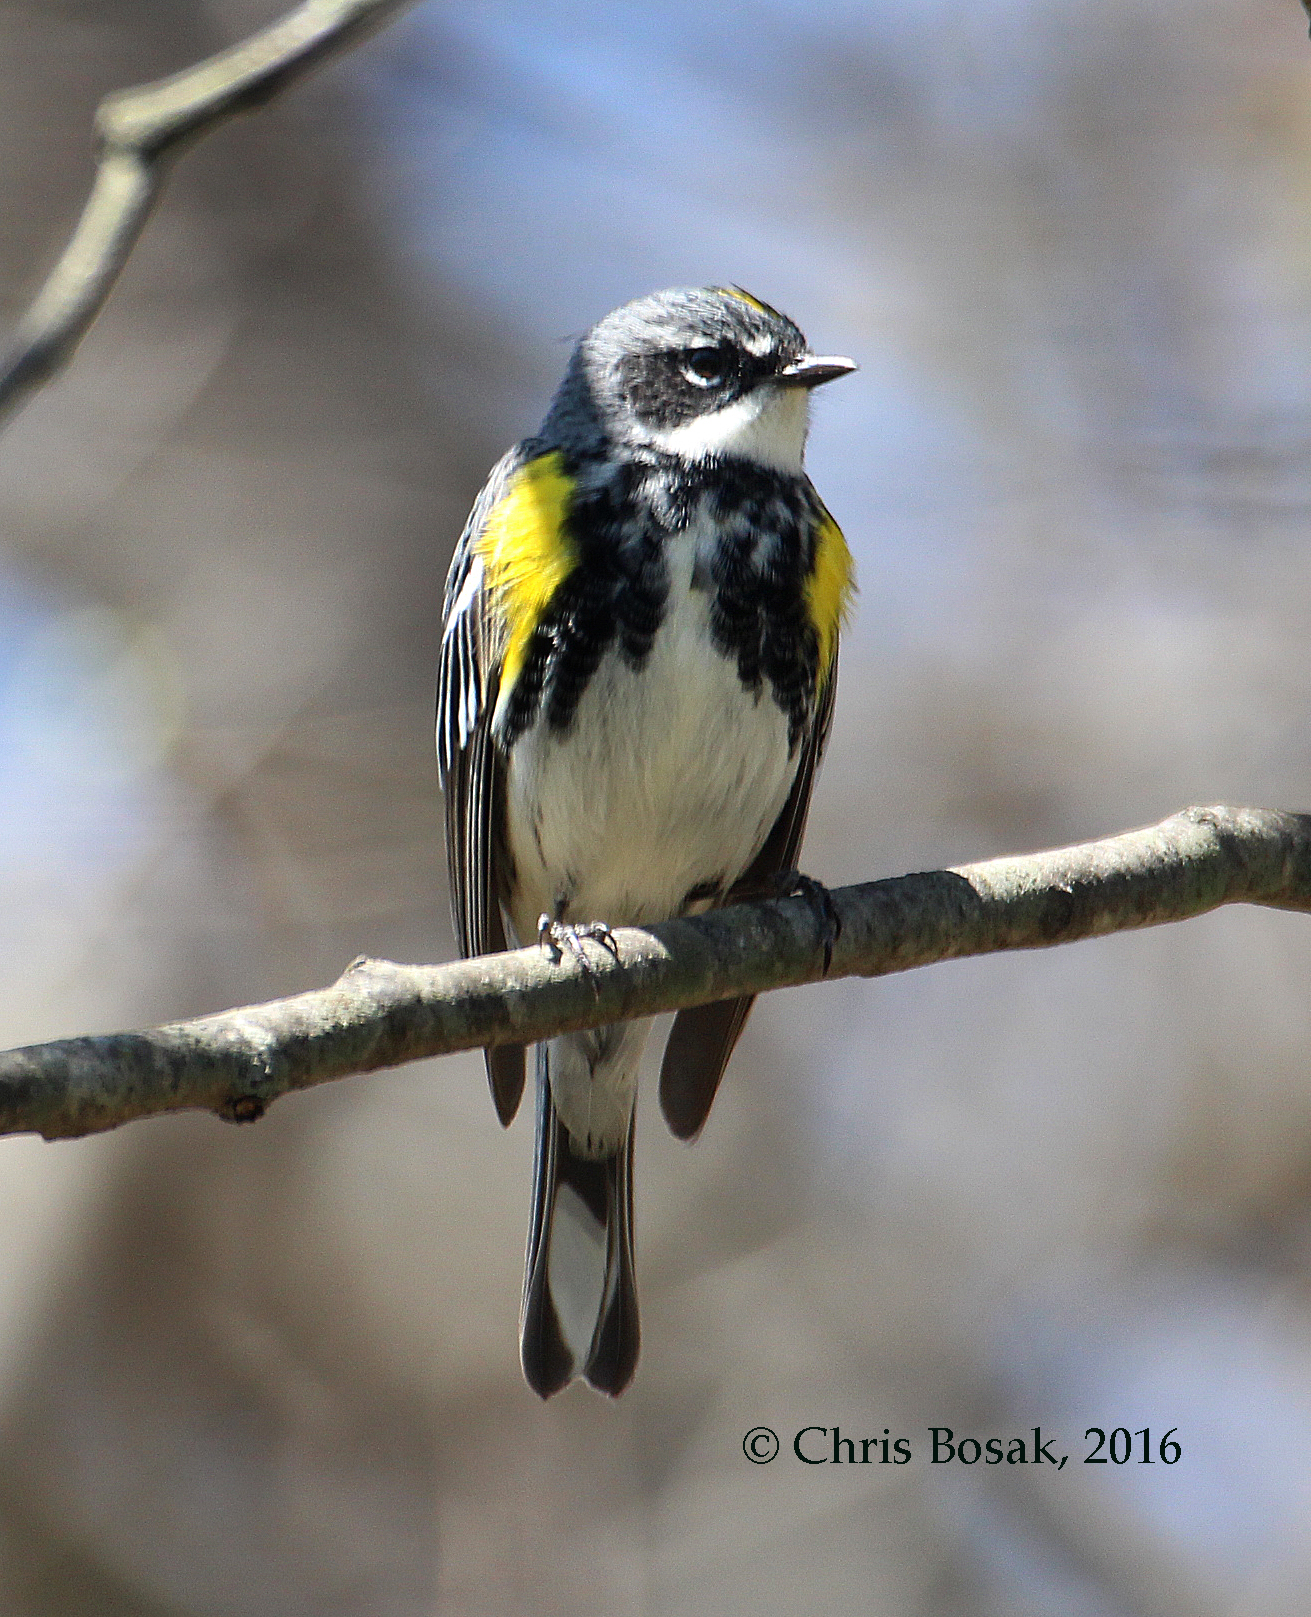 Photo by Chris Bosak A Yellow-rumped Warbler perches on a branch in Selleck's Woods, Darien, Conn., April 2016.